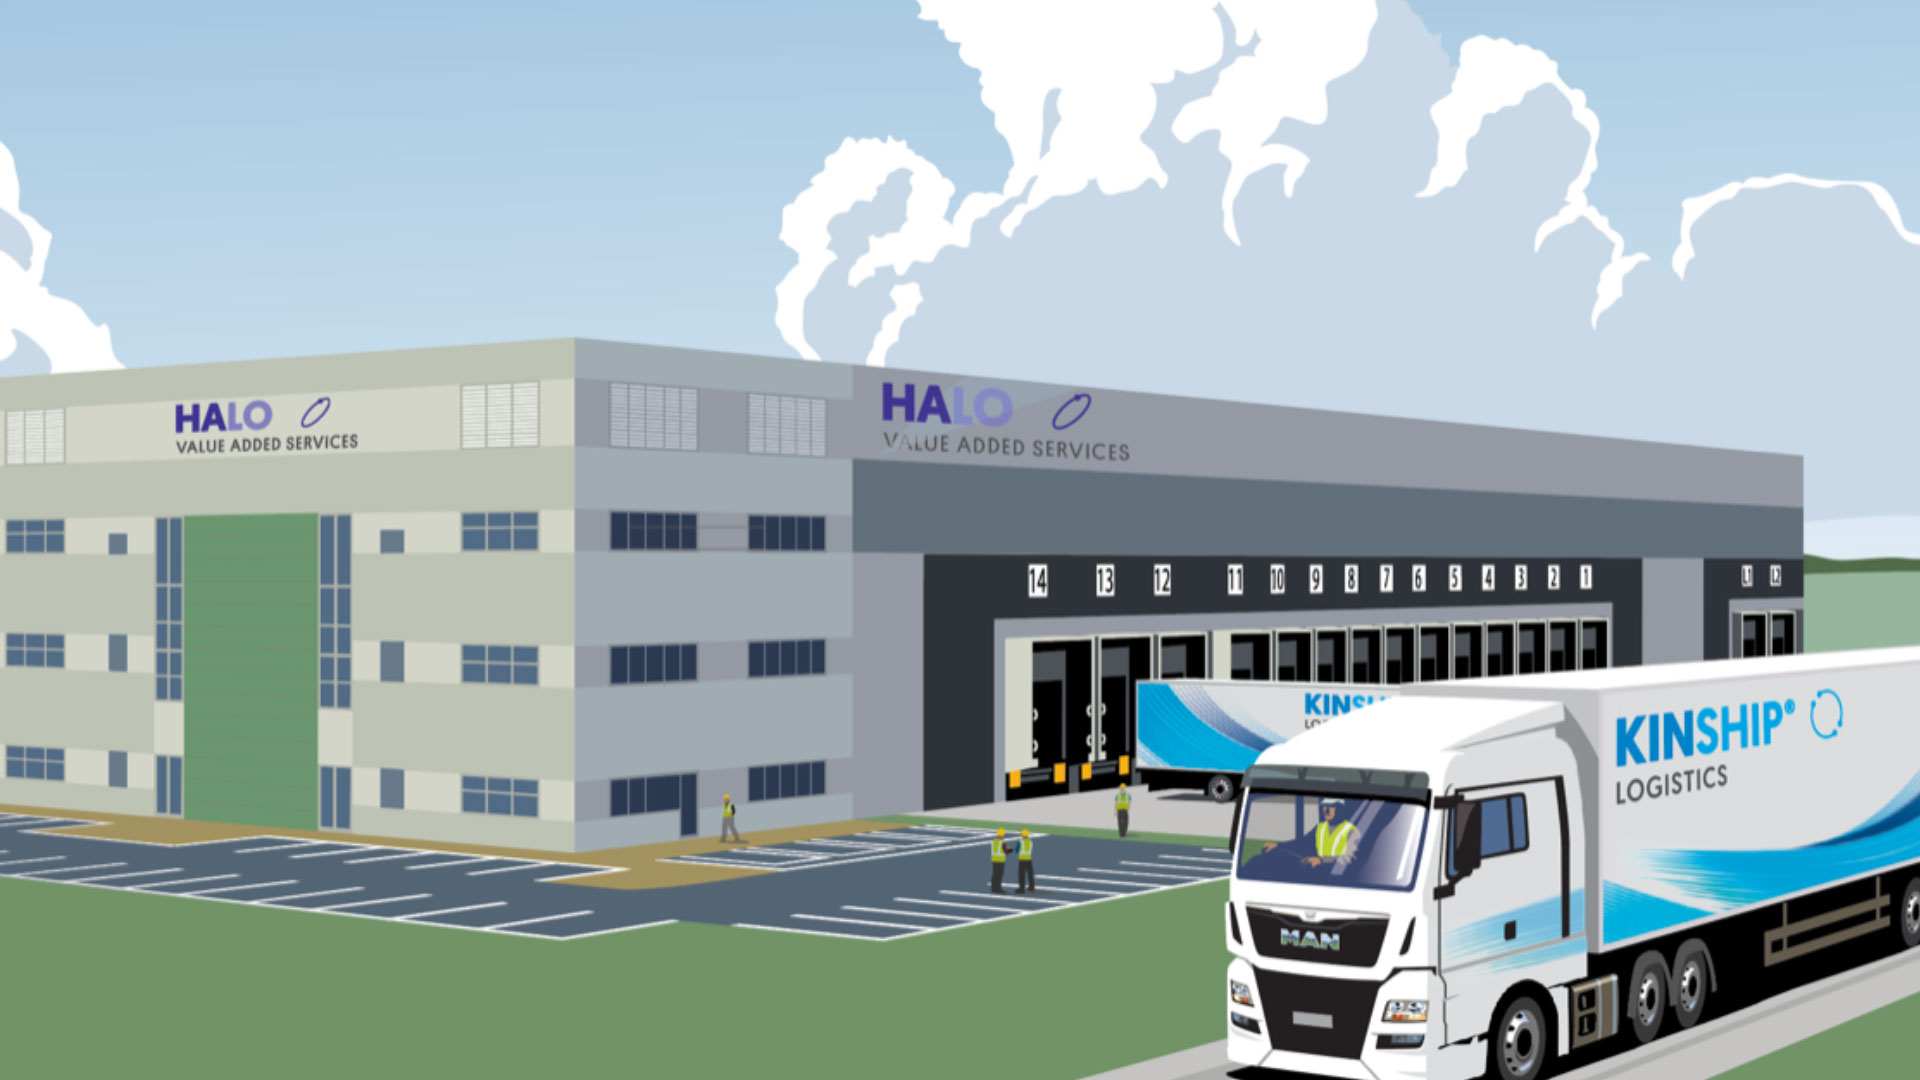 Image of the new Halo building at london gateway